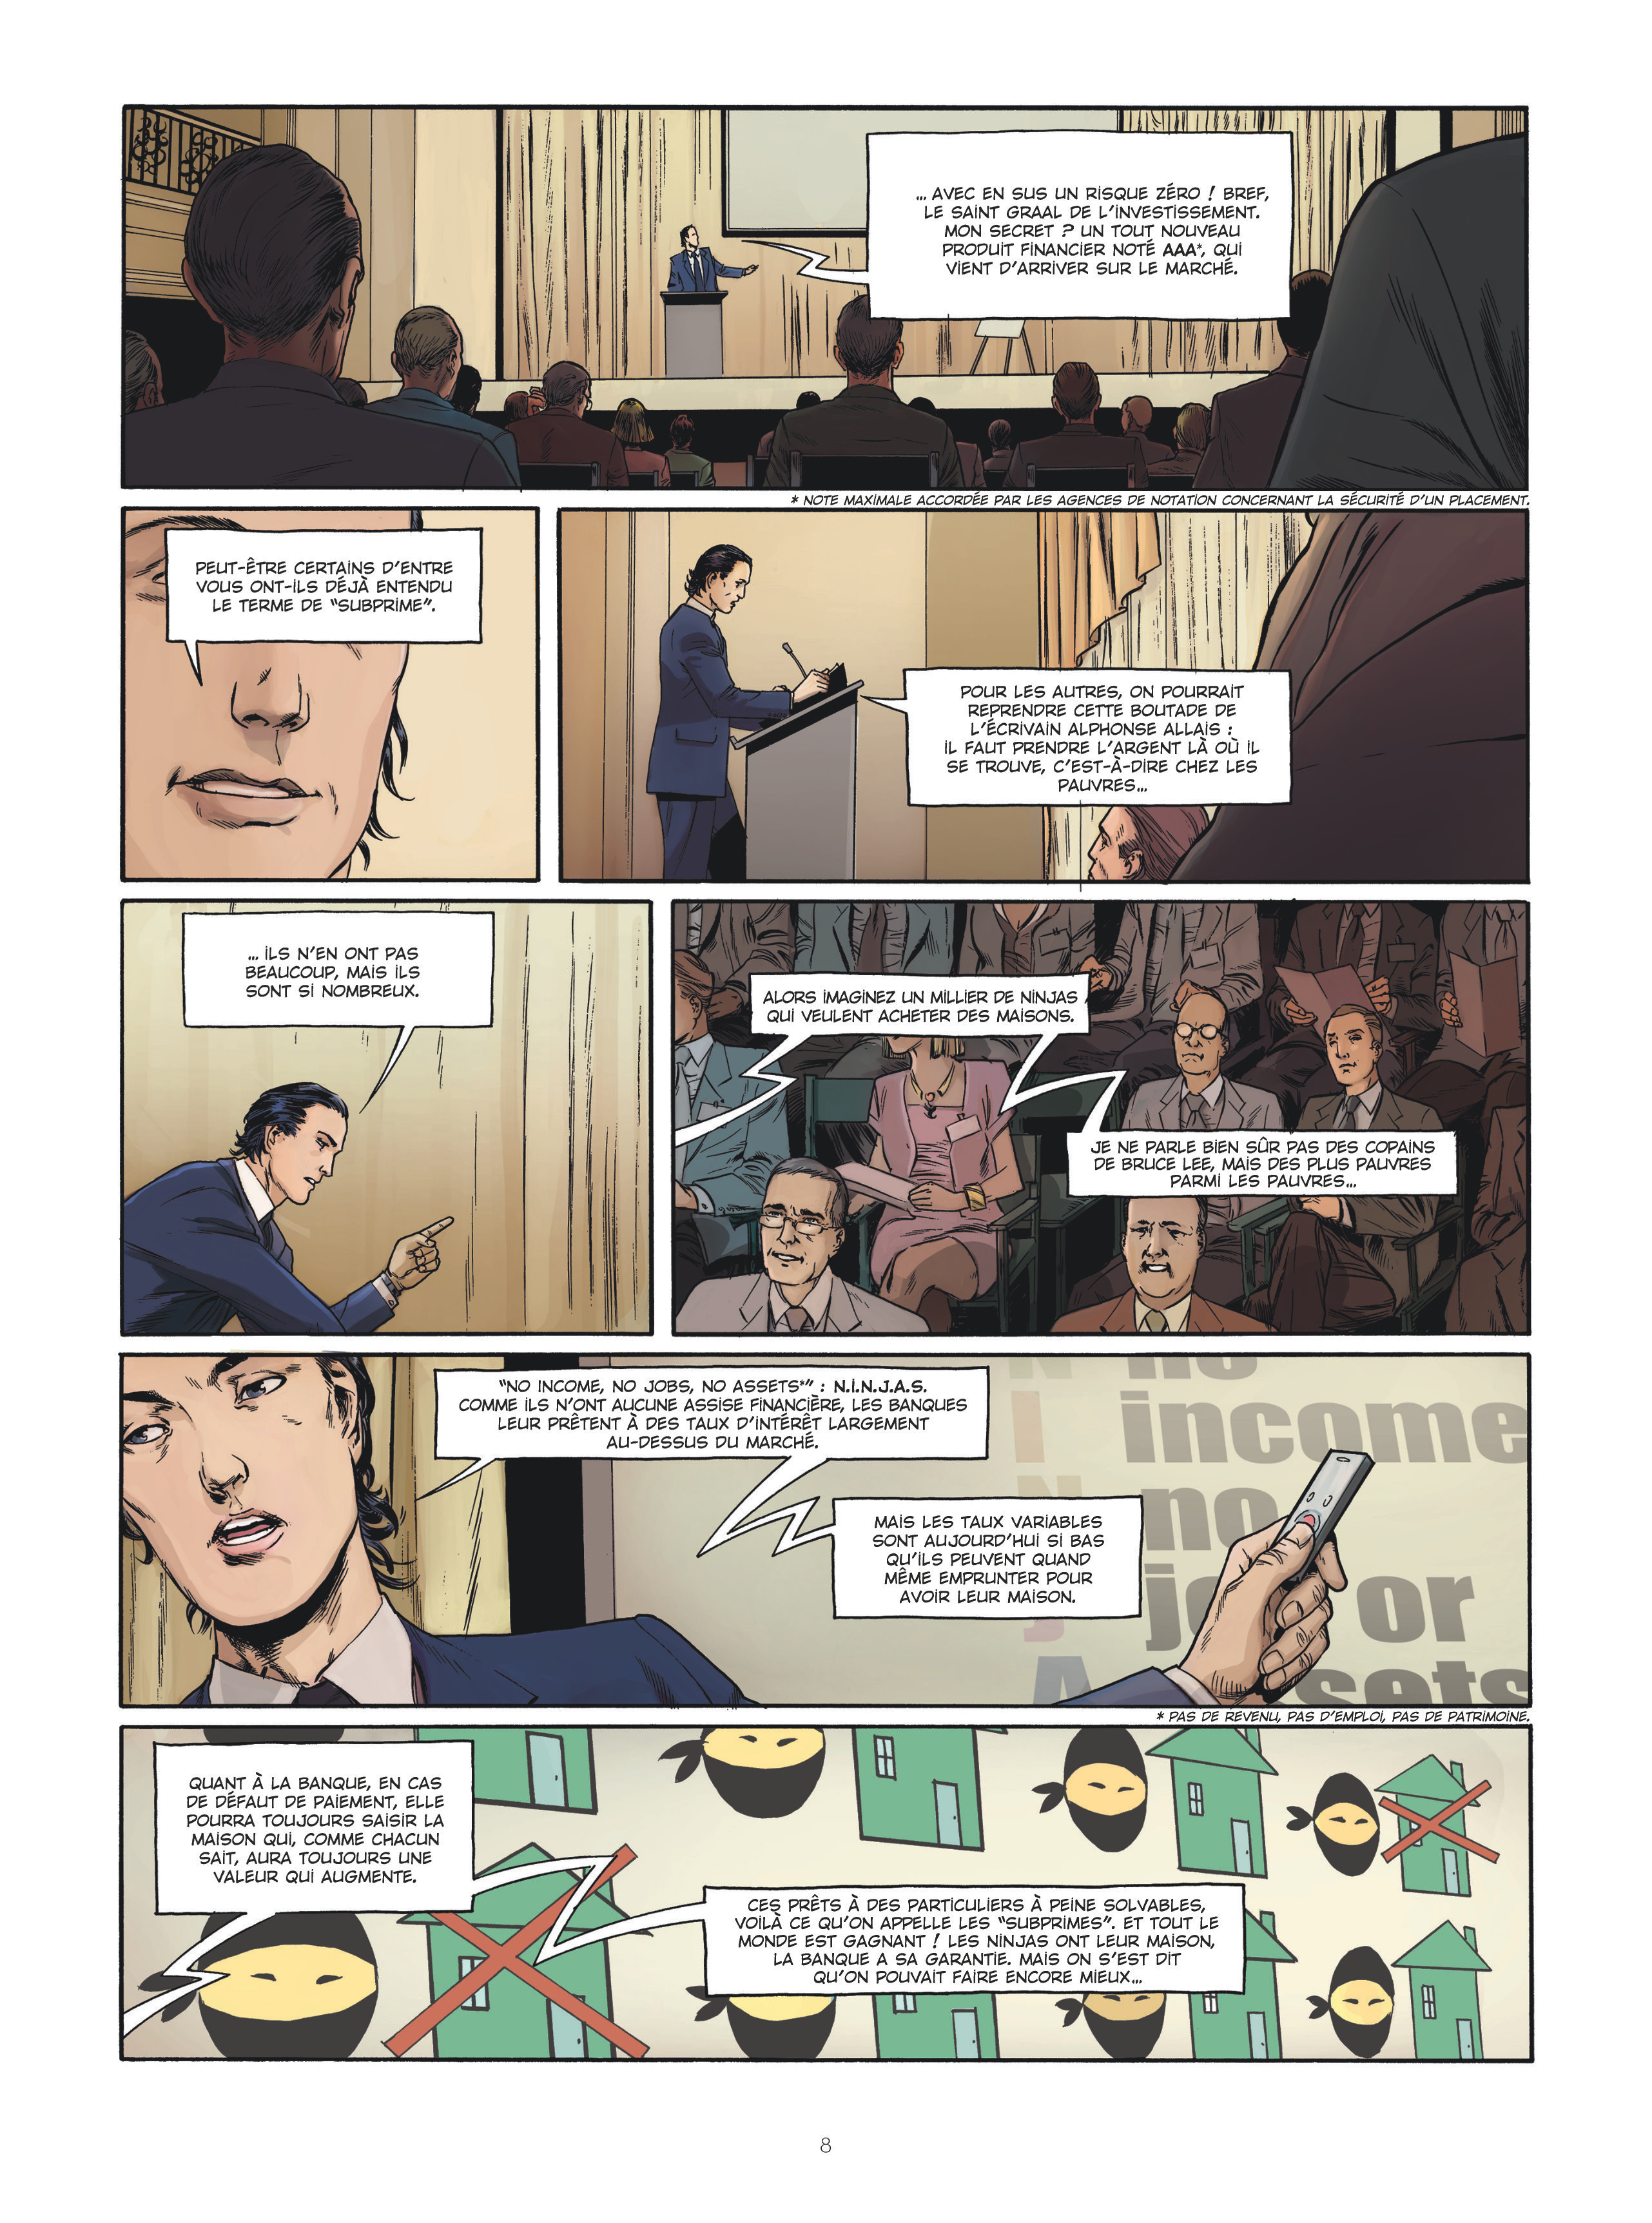 Hedge_fund#2_Page 8